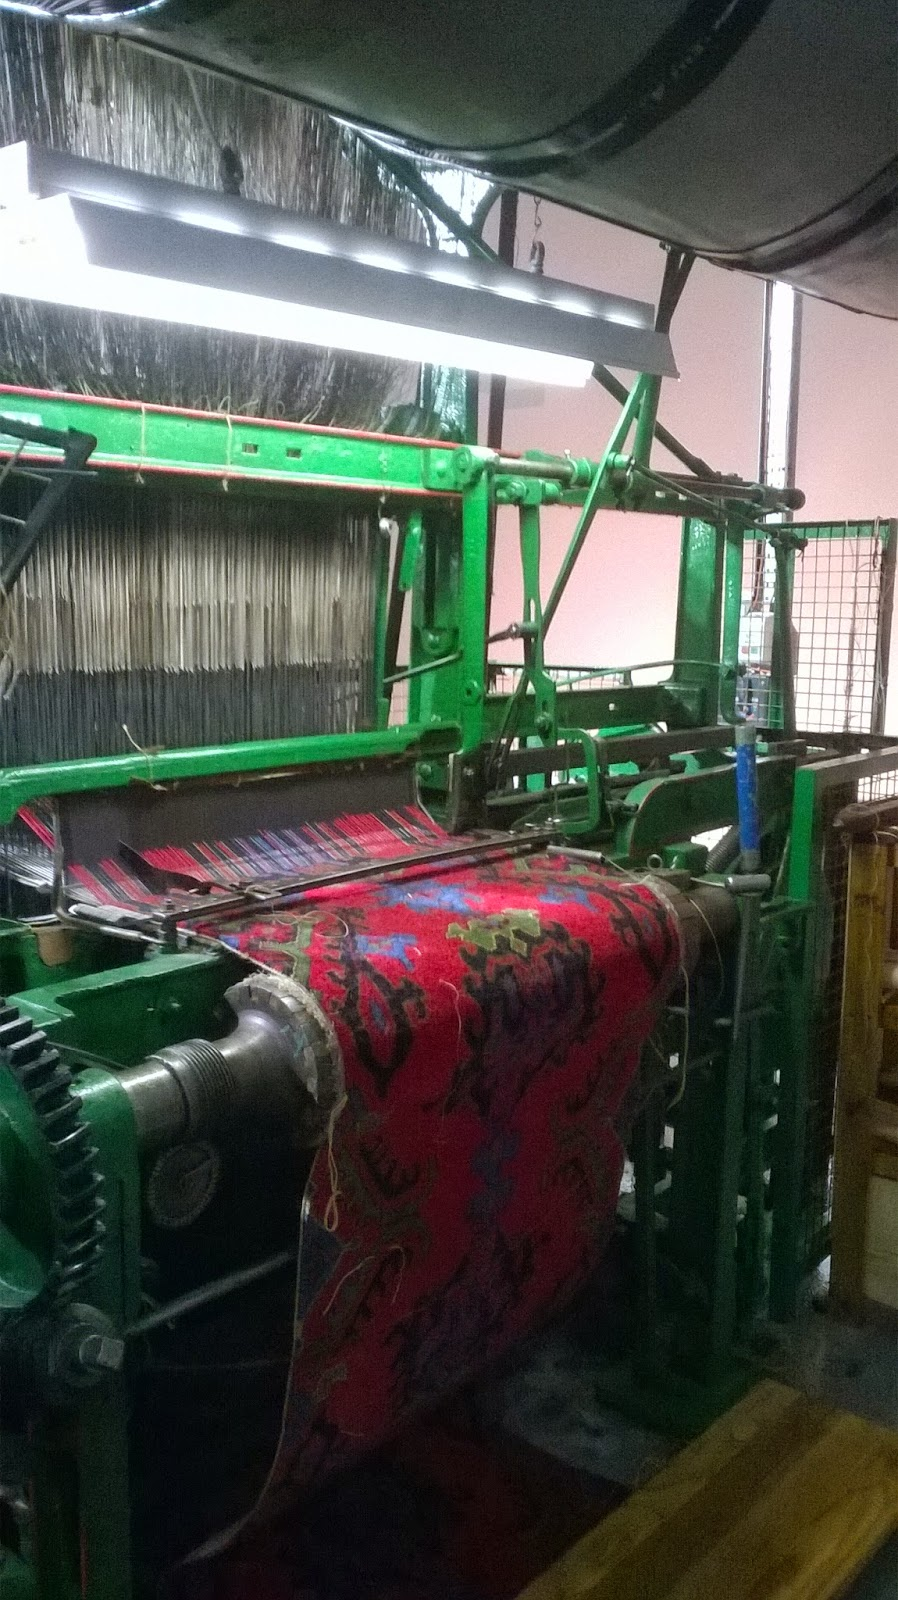 Wilton Carpet Loom at The Carpet Museum Kidderminster